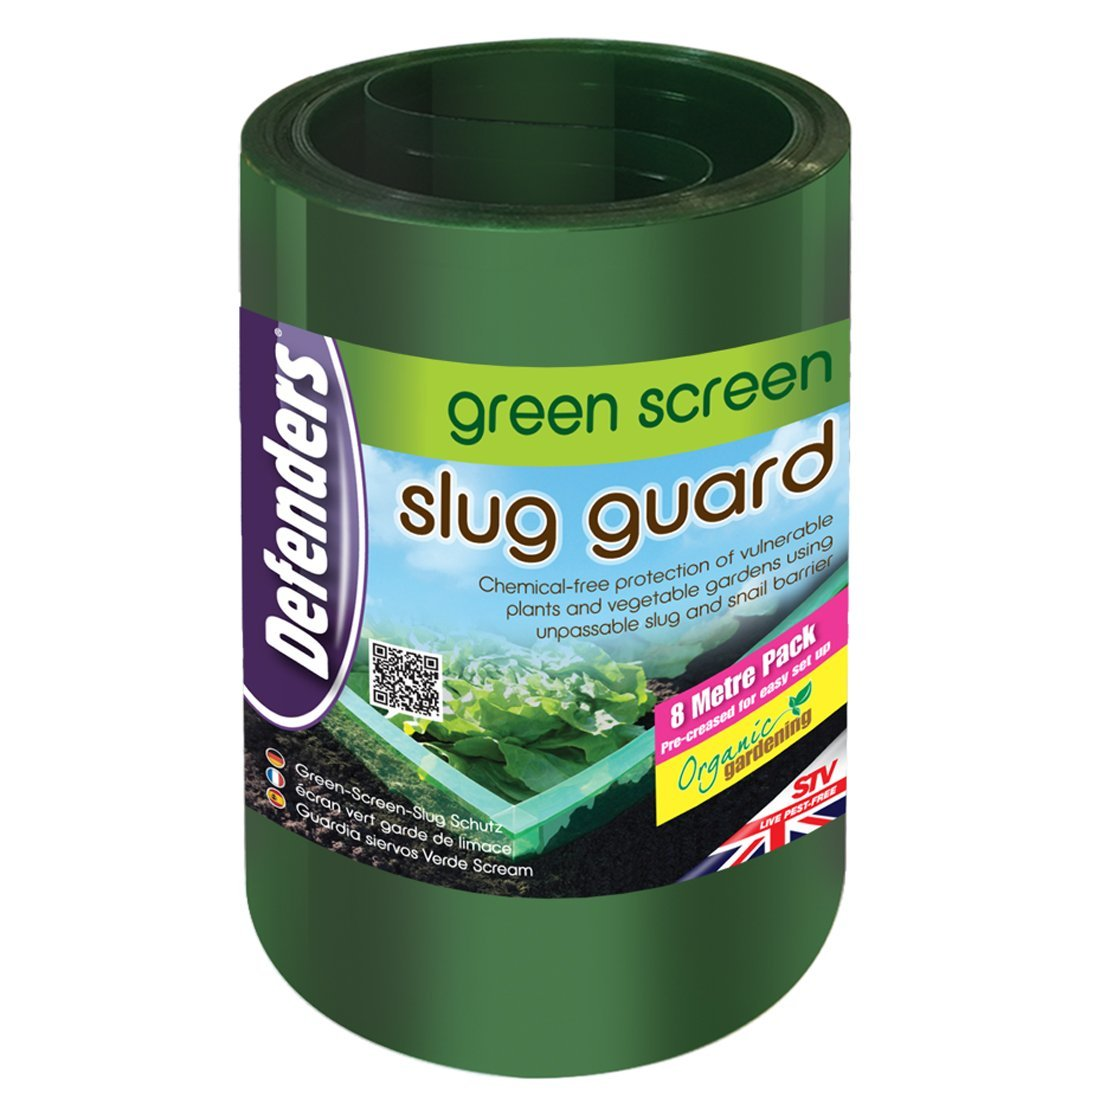 STV International Defenders 8 m Green Screen Slug Guard (Easy to Use, Pre-Folded Slug and Snail Barrier, Protects Plants, Suitable for Natural, Organic Gardening) - Pack of 1 STV099